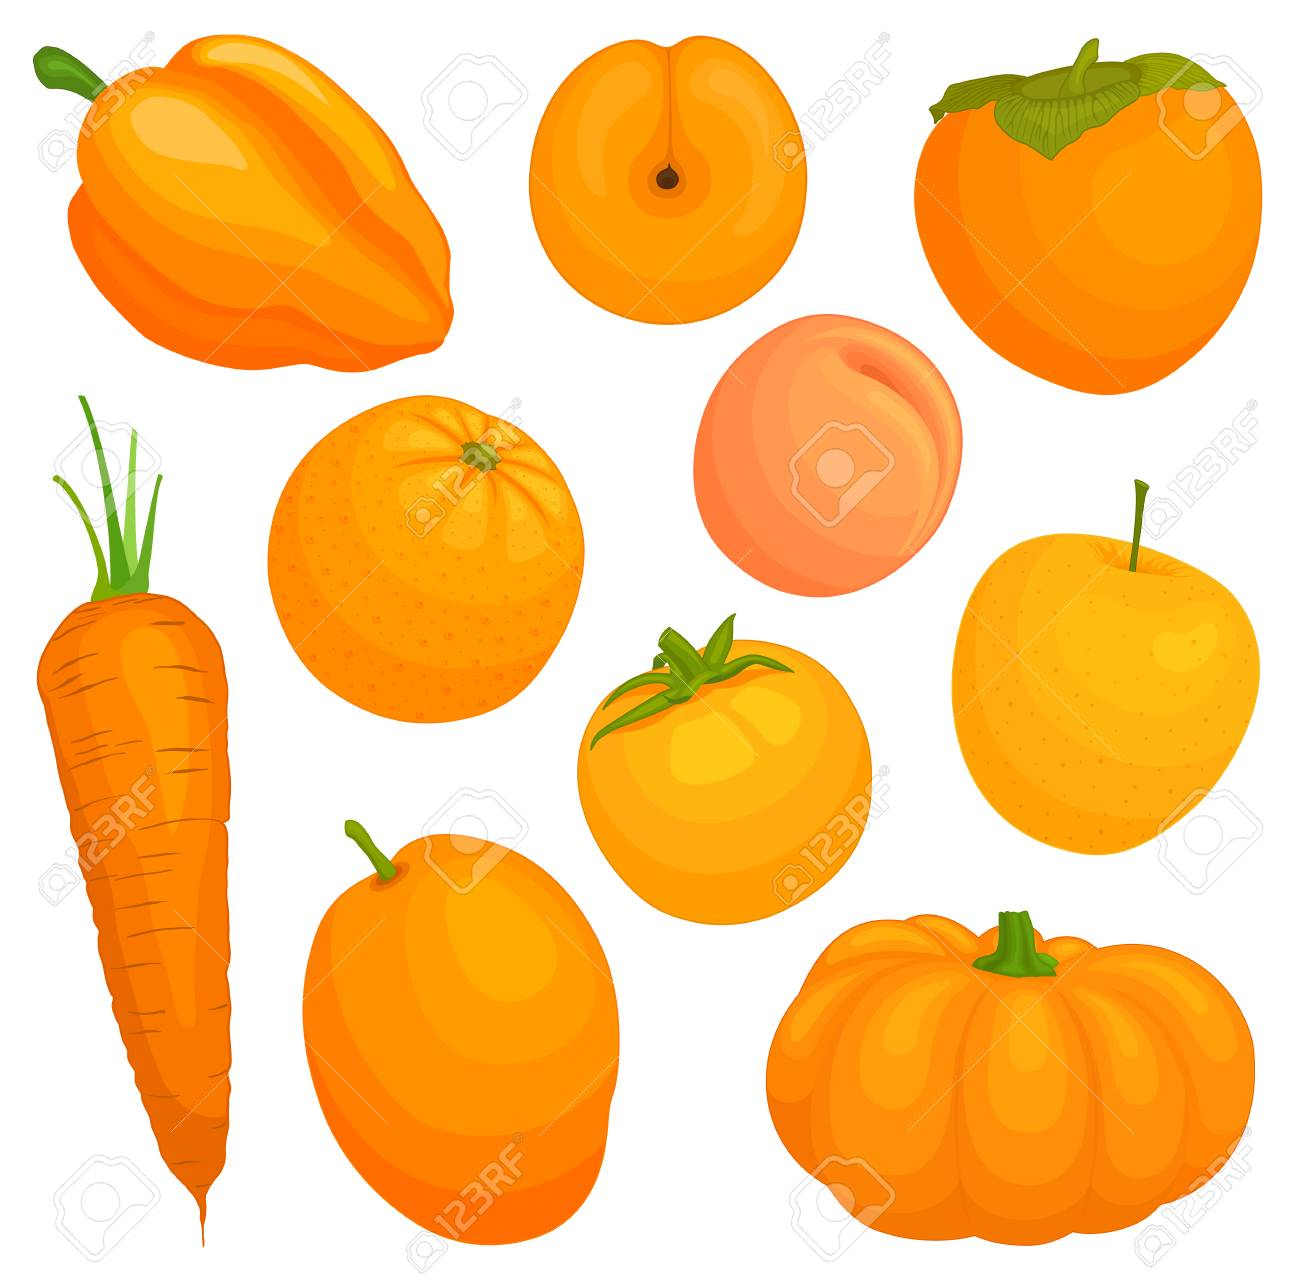 Orange Vegetables And Fruits Vector Illustration A Set Of Food Royalty Free Cliparts Vectors And Stock Illustration Image 93225904